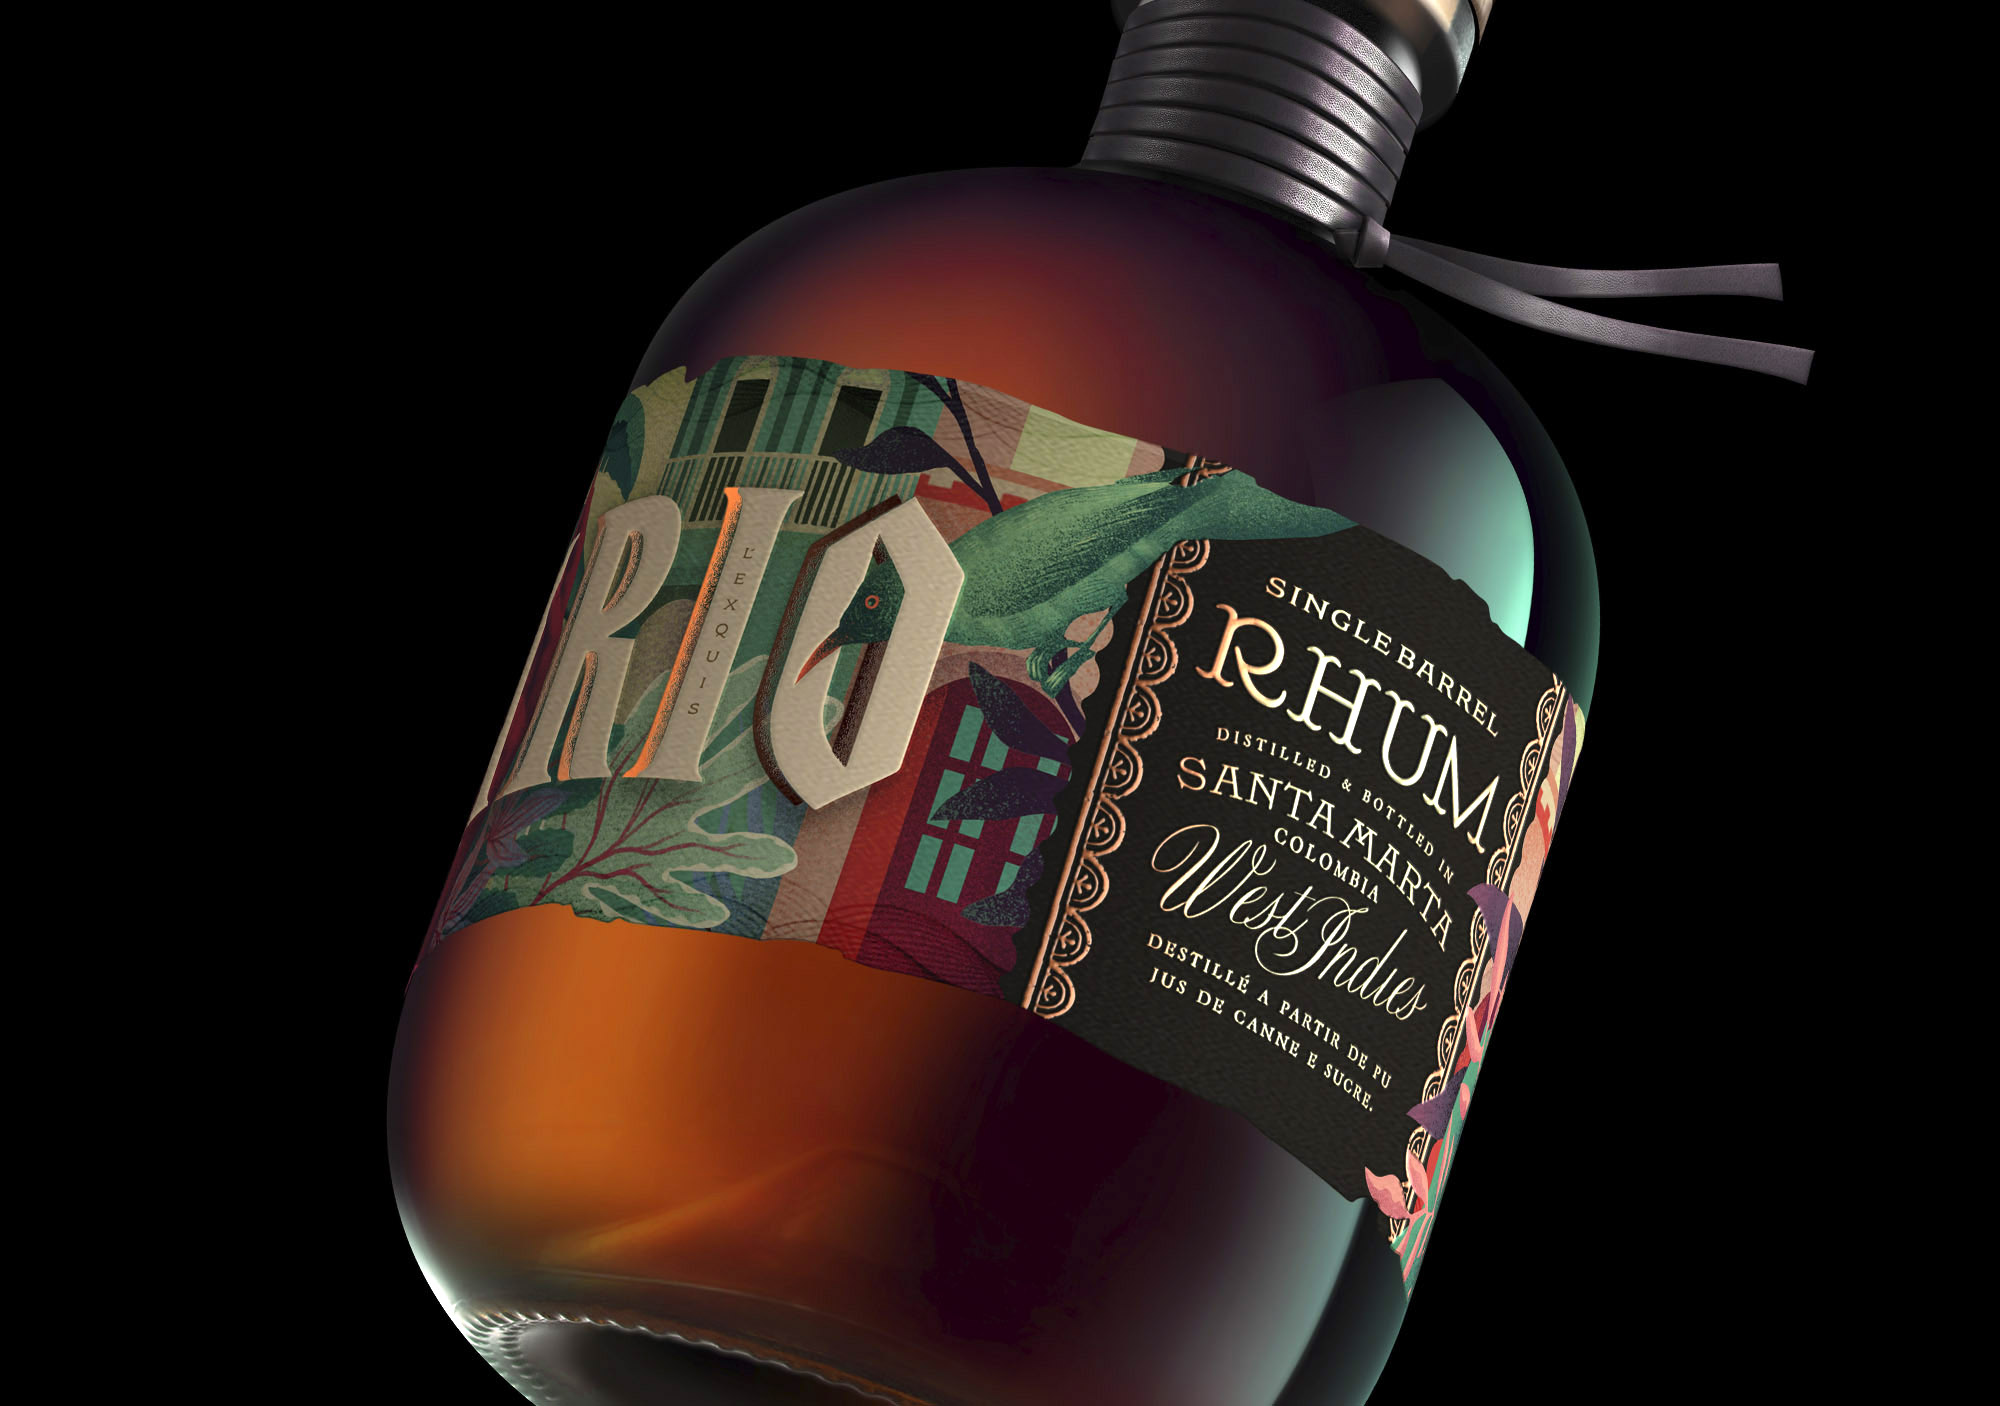 Samario Rum Packaging Design Created by Oveja & Remi